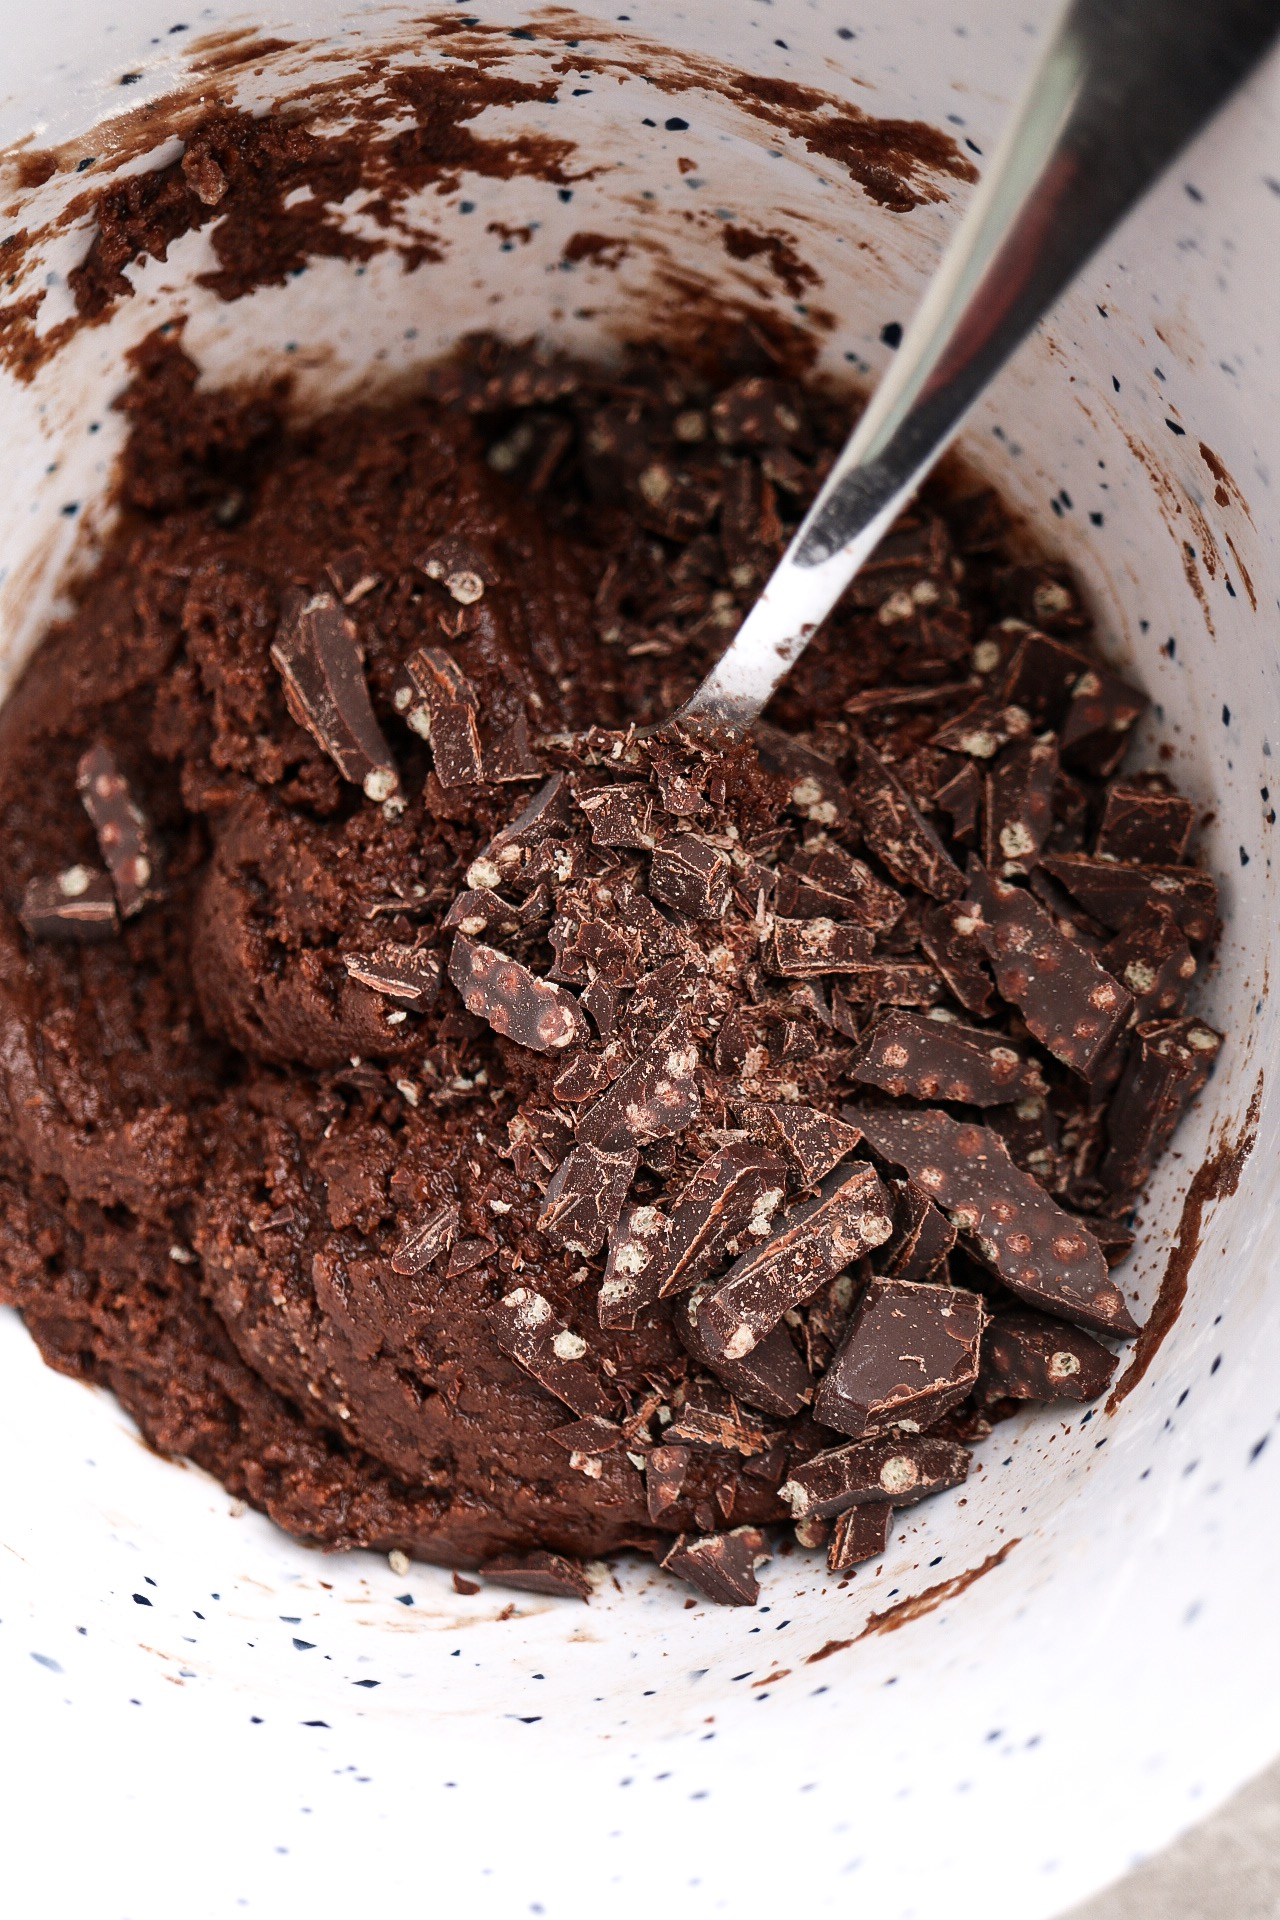 Chop up your chocolate, folding it into the batter!